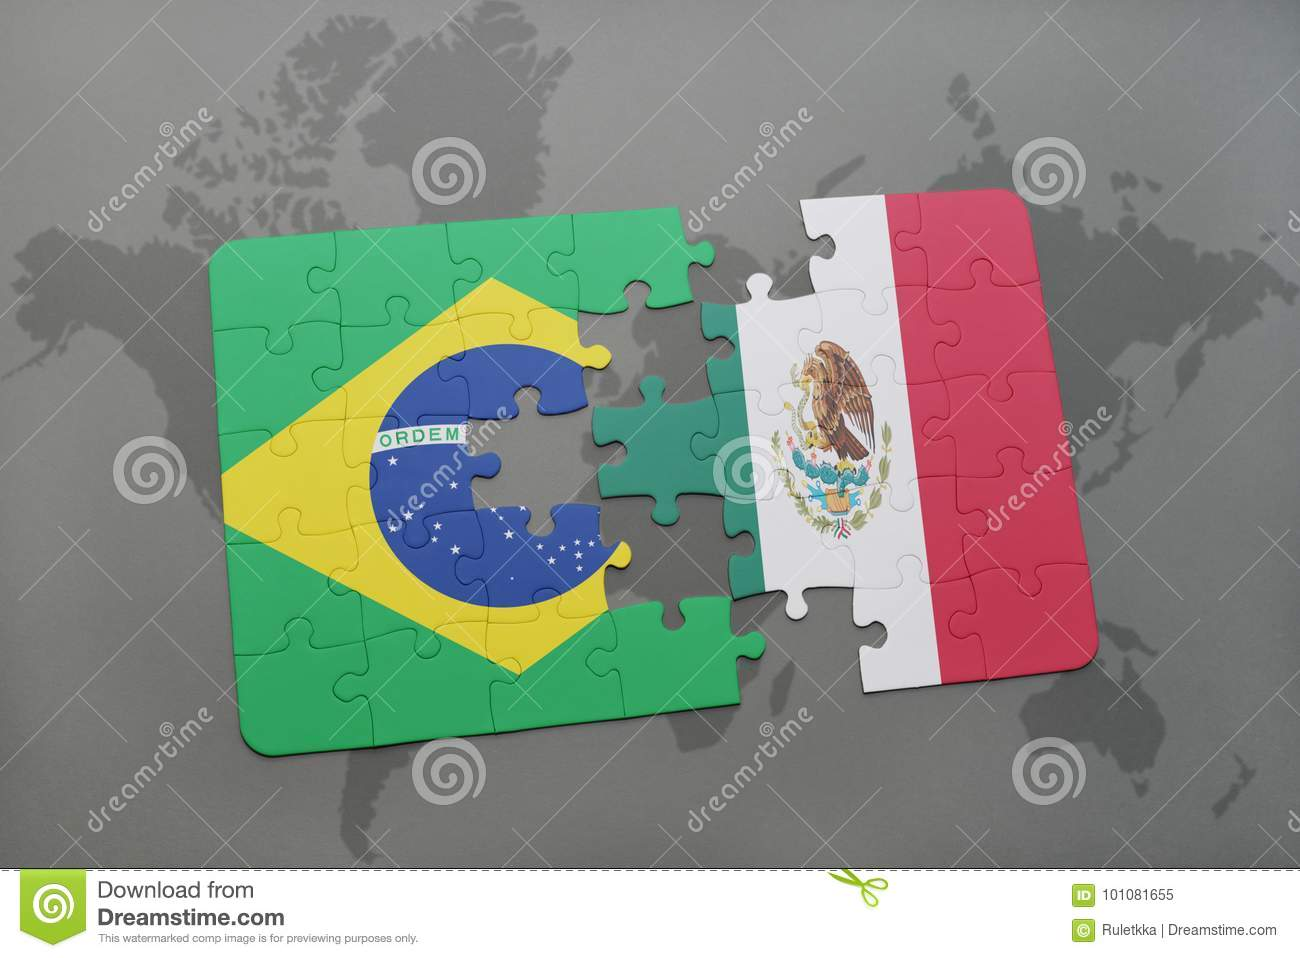 Puzzle with the national flag of brazil and mexico on a world map download puzzle with the national flag of brazil and mexico on a world map background gumiabroncs Choice Image